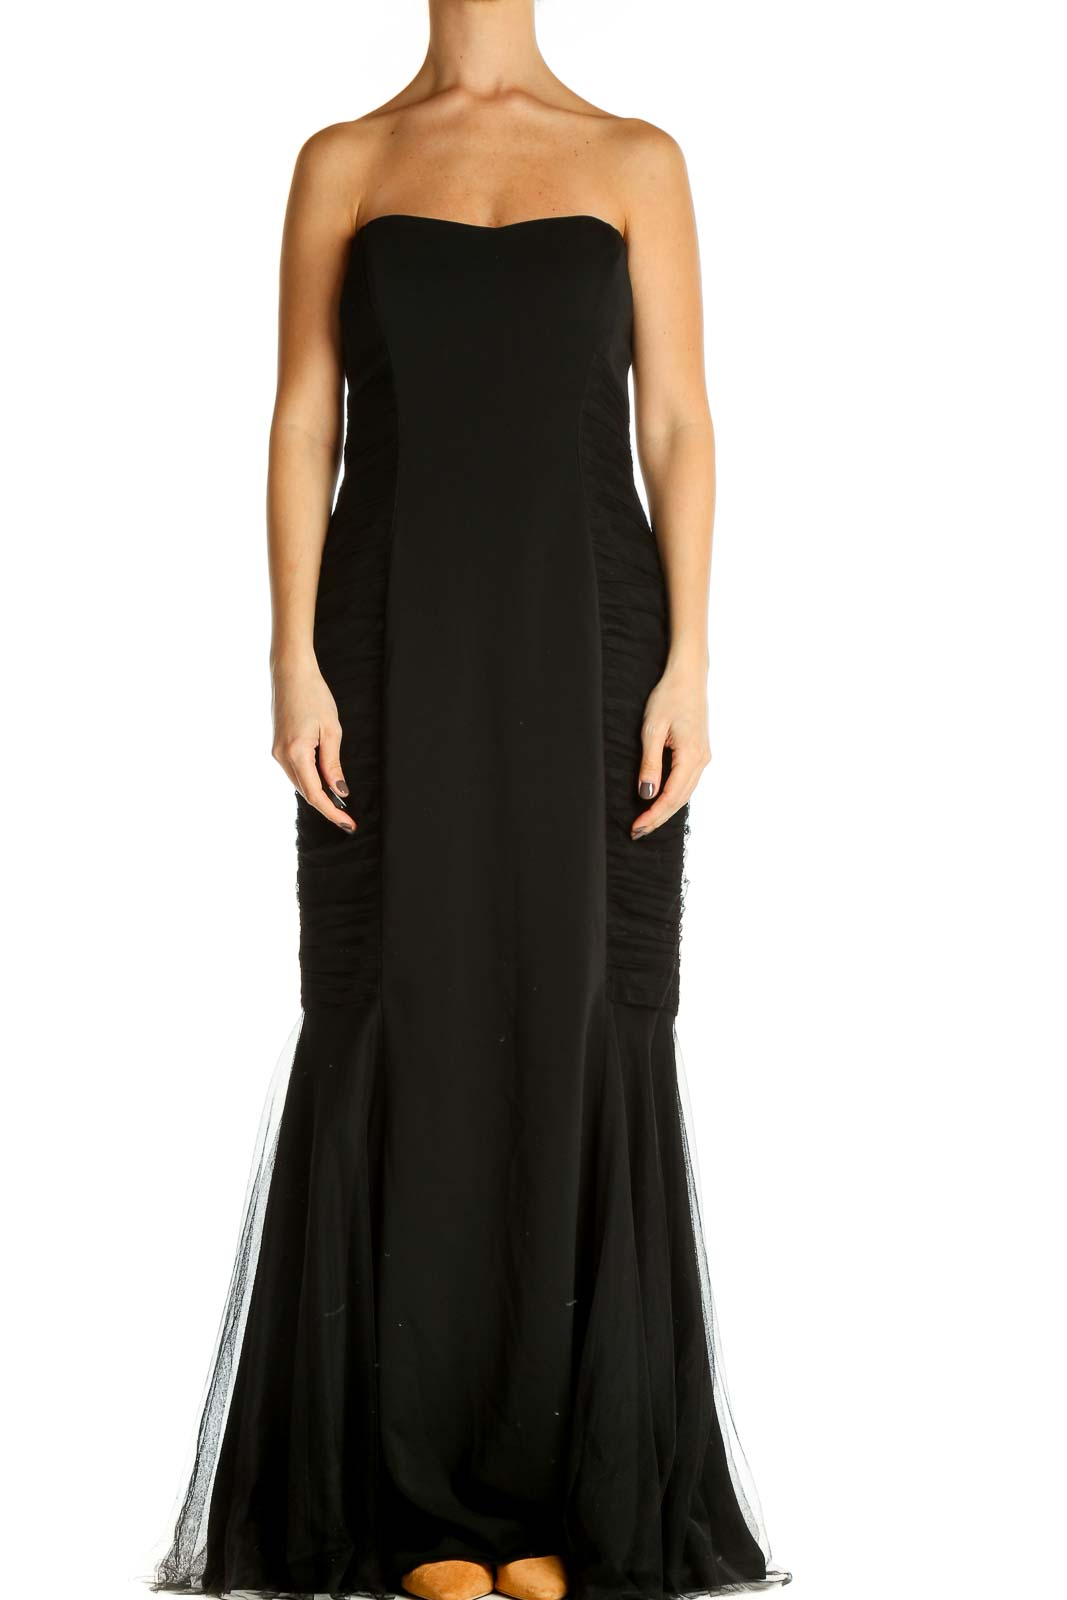 Black Solid Cocktail Mermaid Dress Front